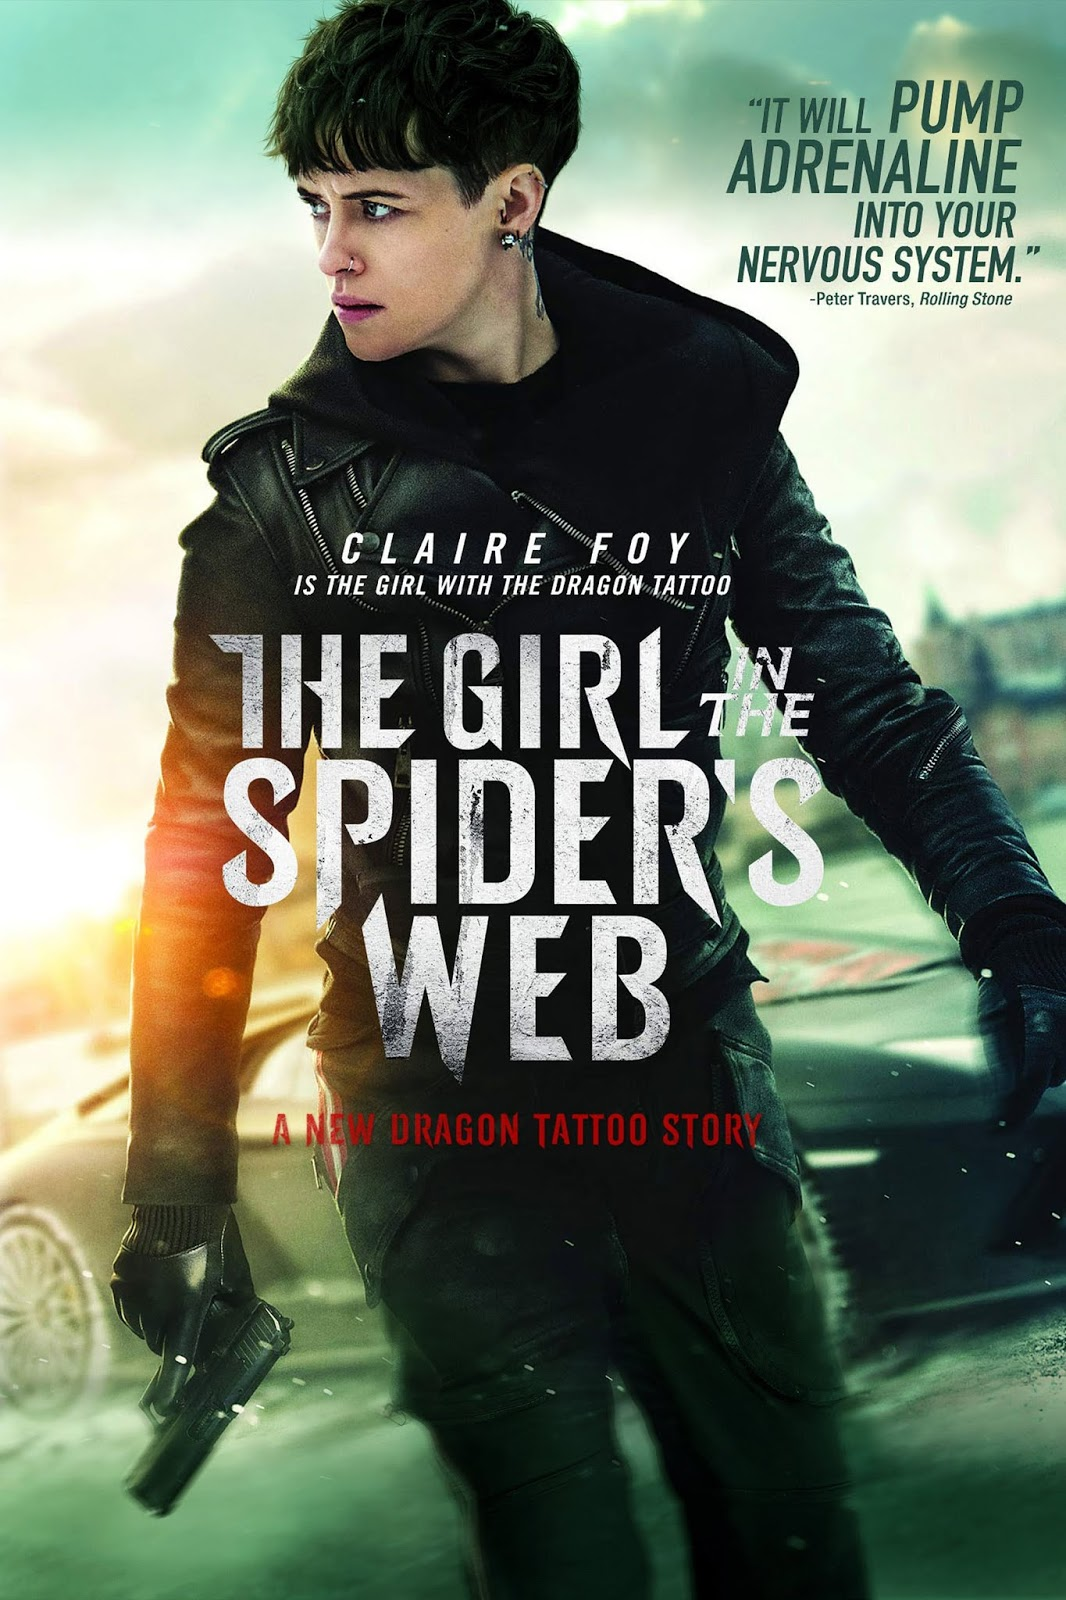 The Girl In The Spiders Web 2018 Hindi-English ORG Dual Audio 720p BluRay 1.5GB With ESub